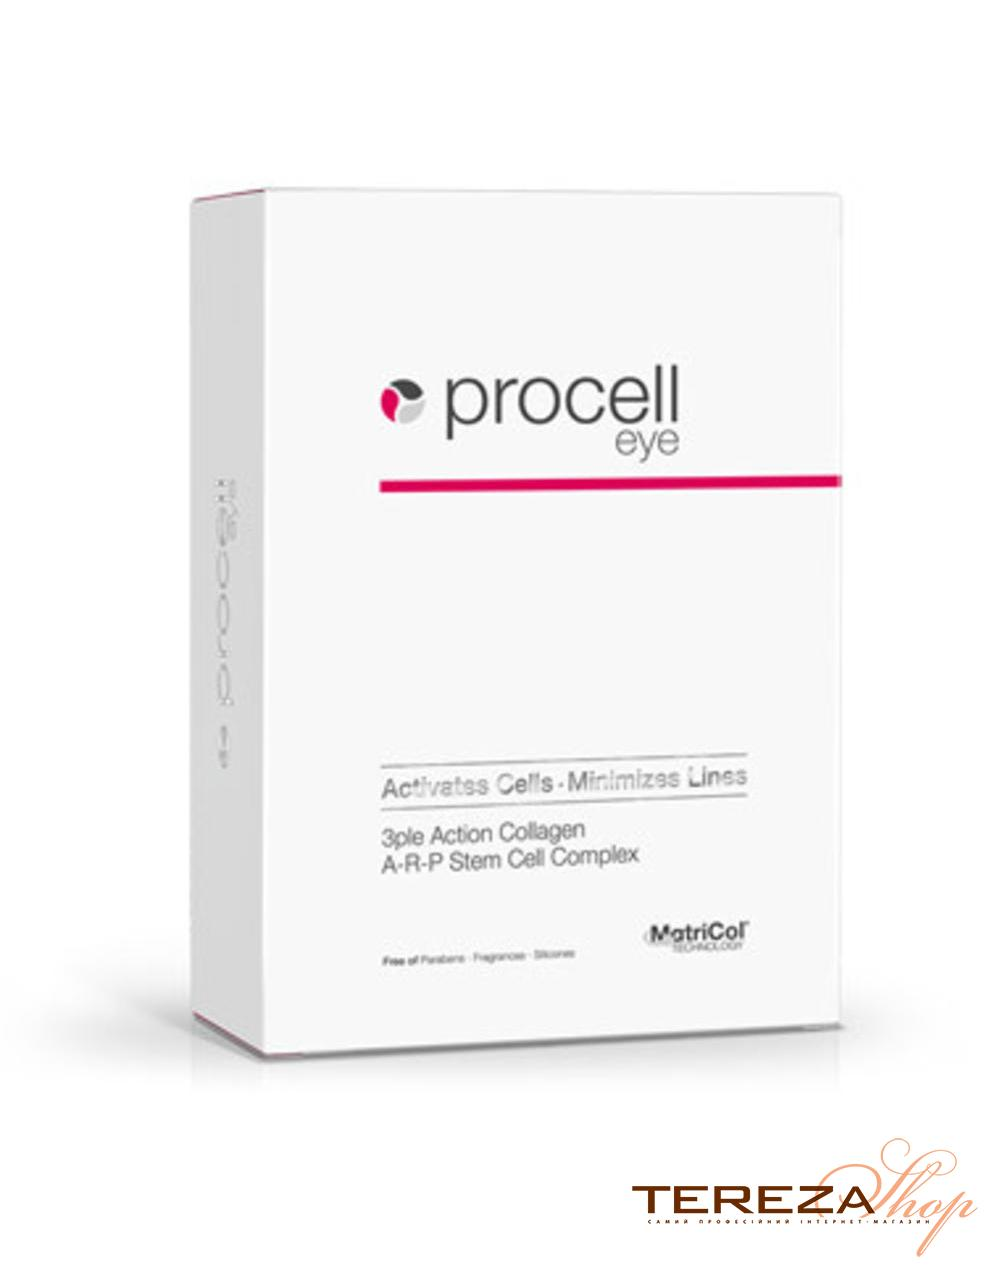 PROCELL EYE MEDSKIN SOLUTIONS | Tereza Shop